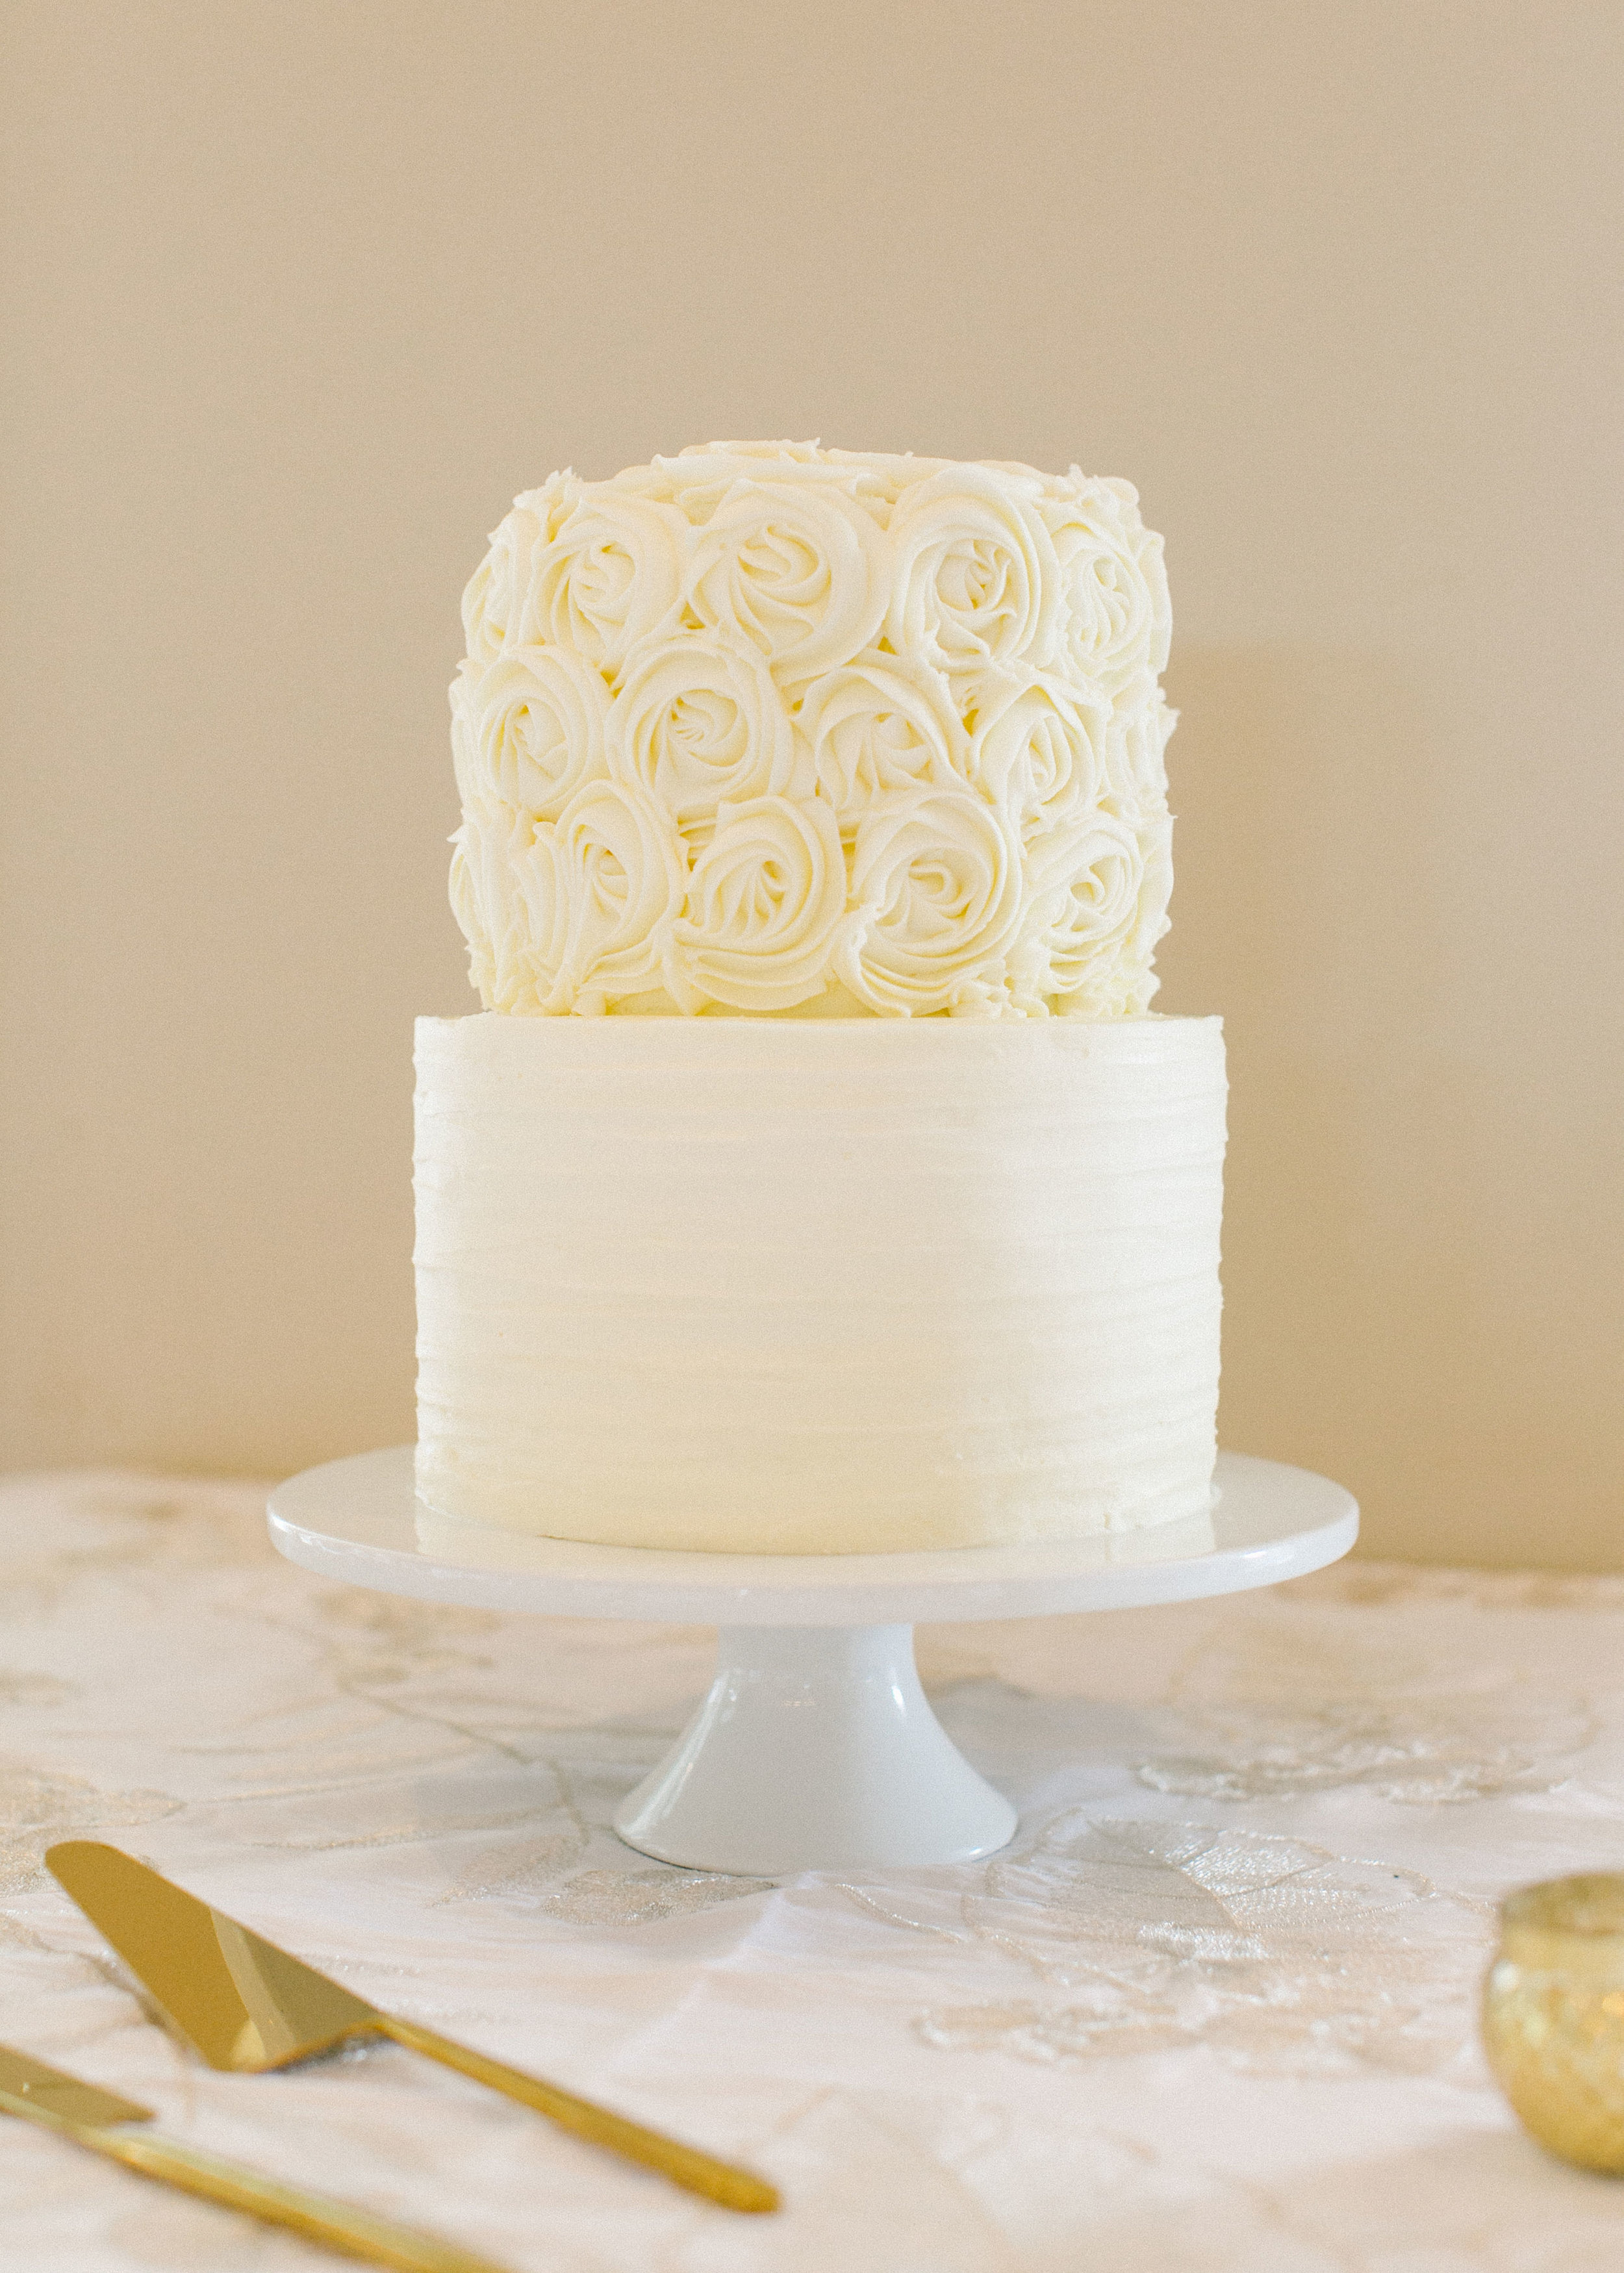 This amazing wedding cake was created by  The Phoenix Bakery  of Pittsboro, NC. Photo credit:  L'amour Foto .